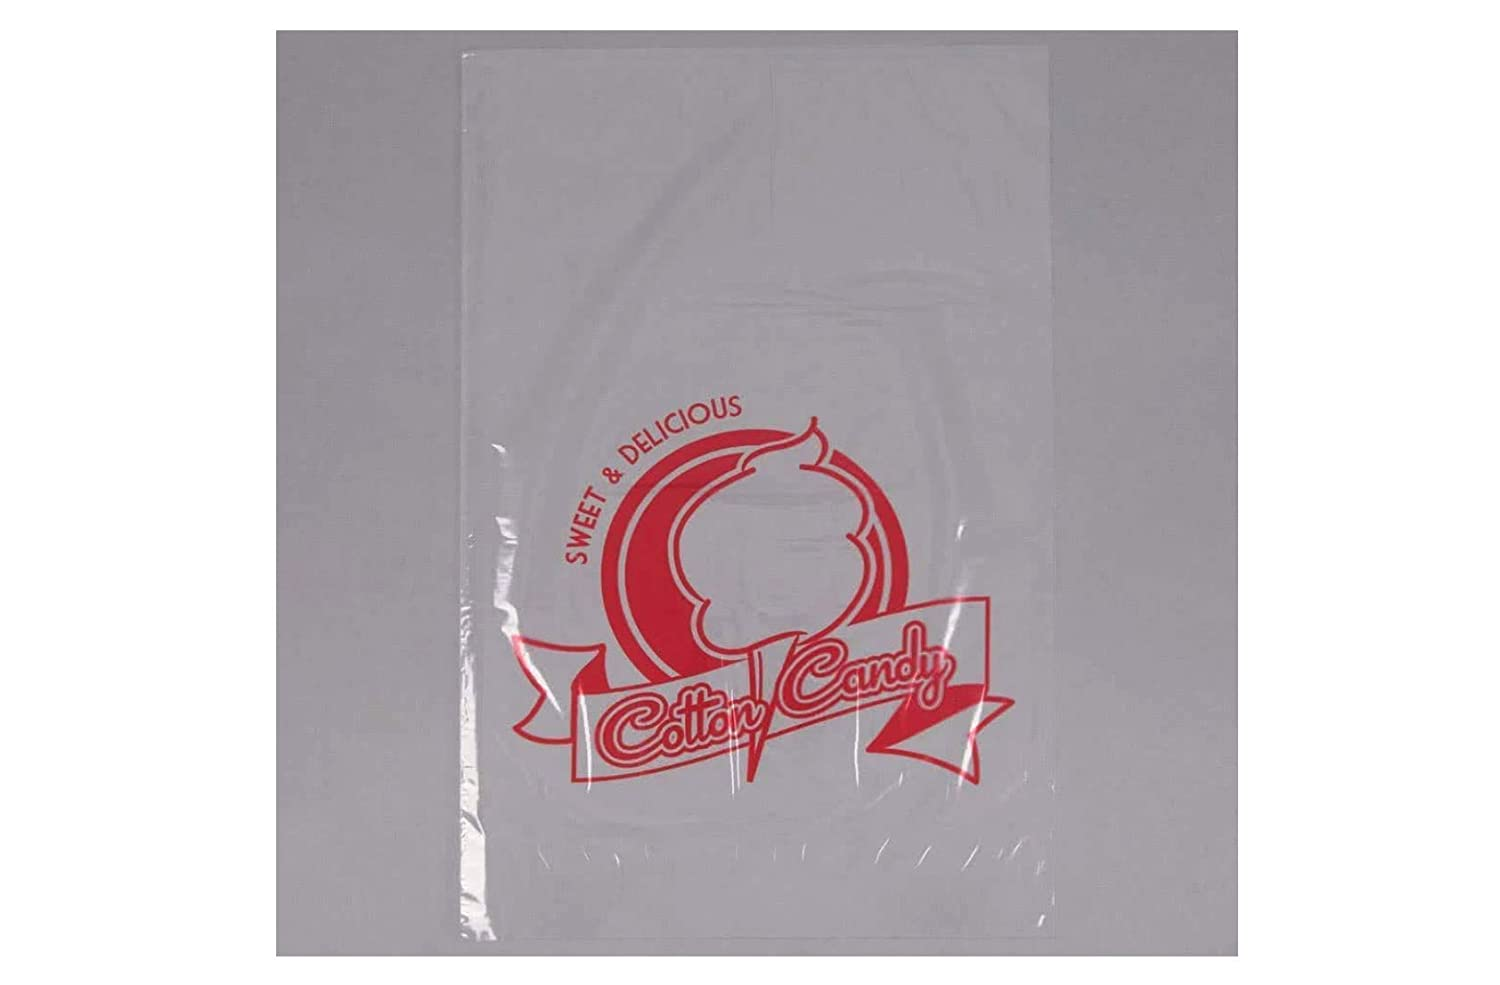 Carnival King 202502504 11 1//2 x 19 1//2 Printed Cotton Candy Bag 100//Pack